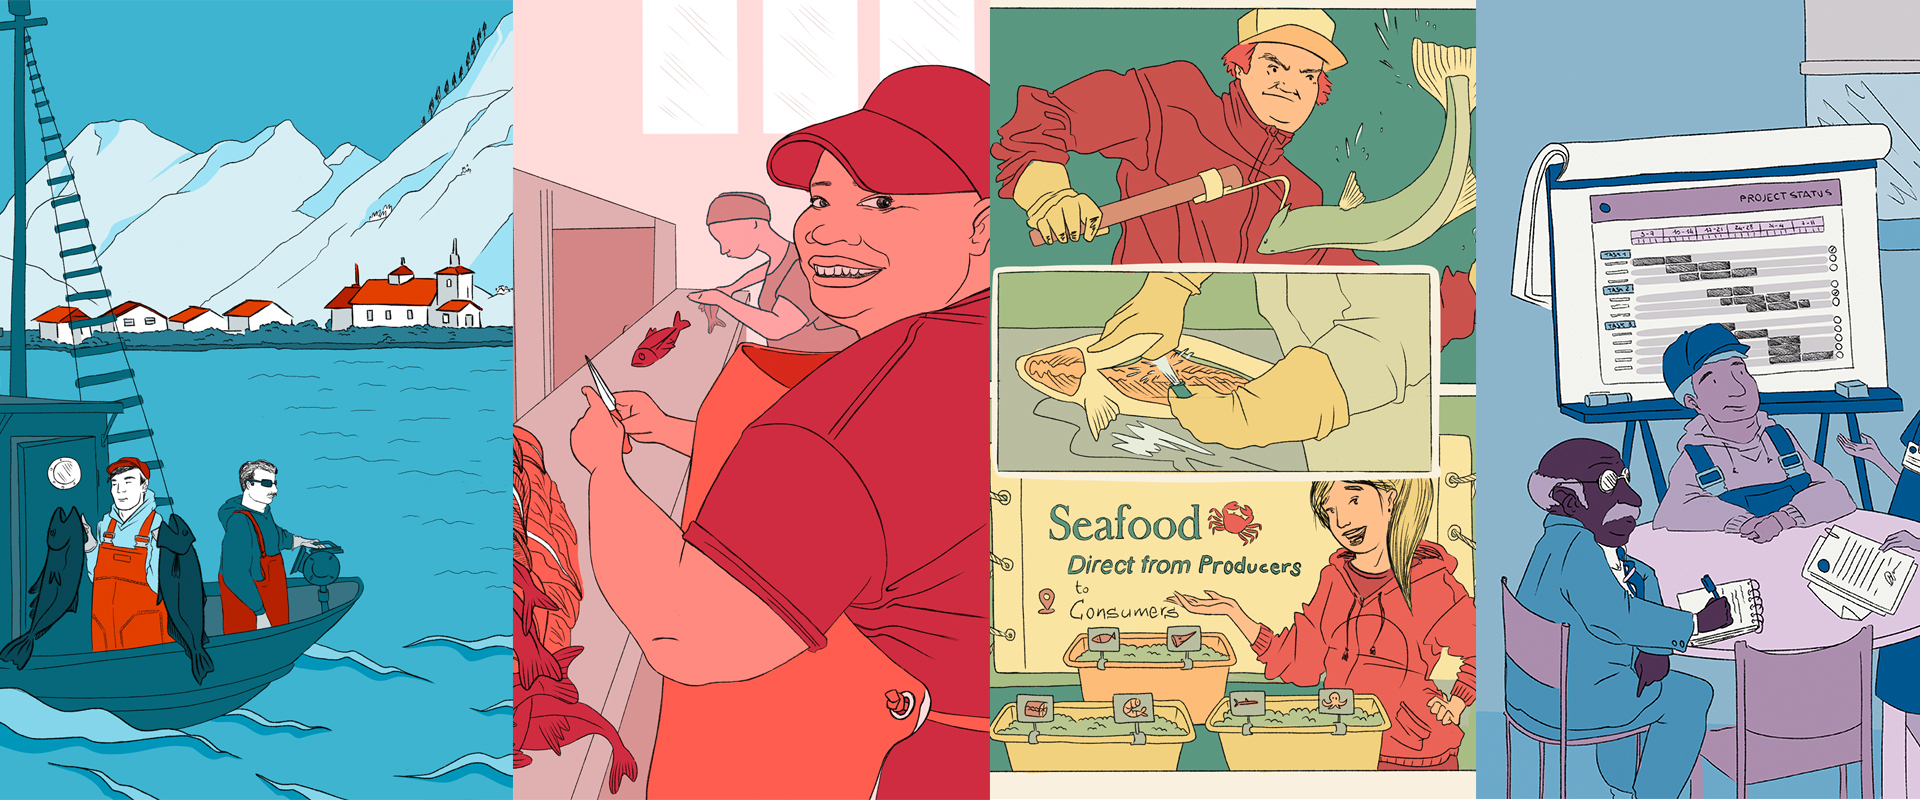 illustrations of fishing industry, colorful and international